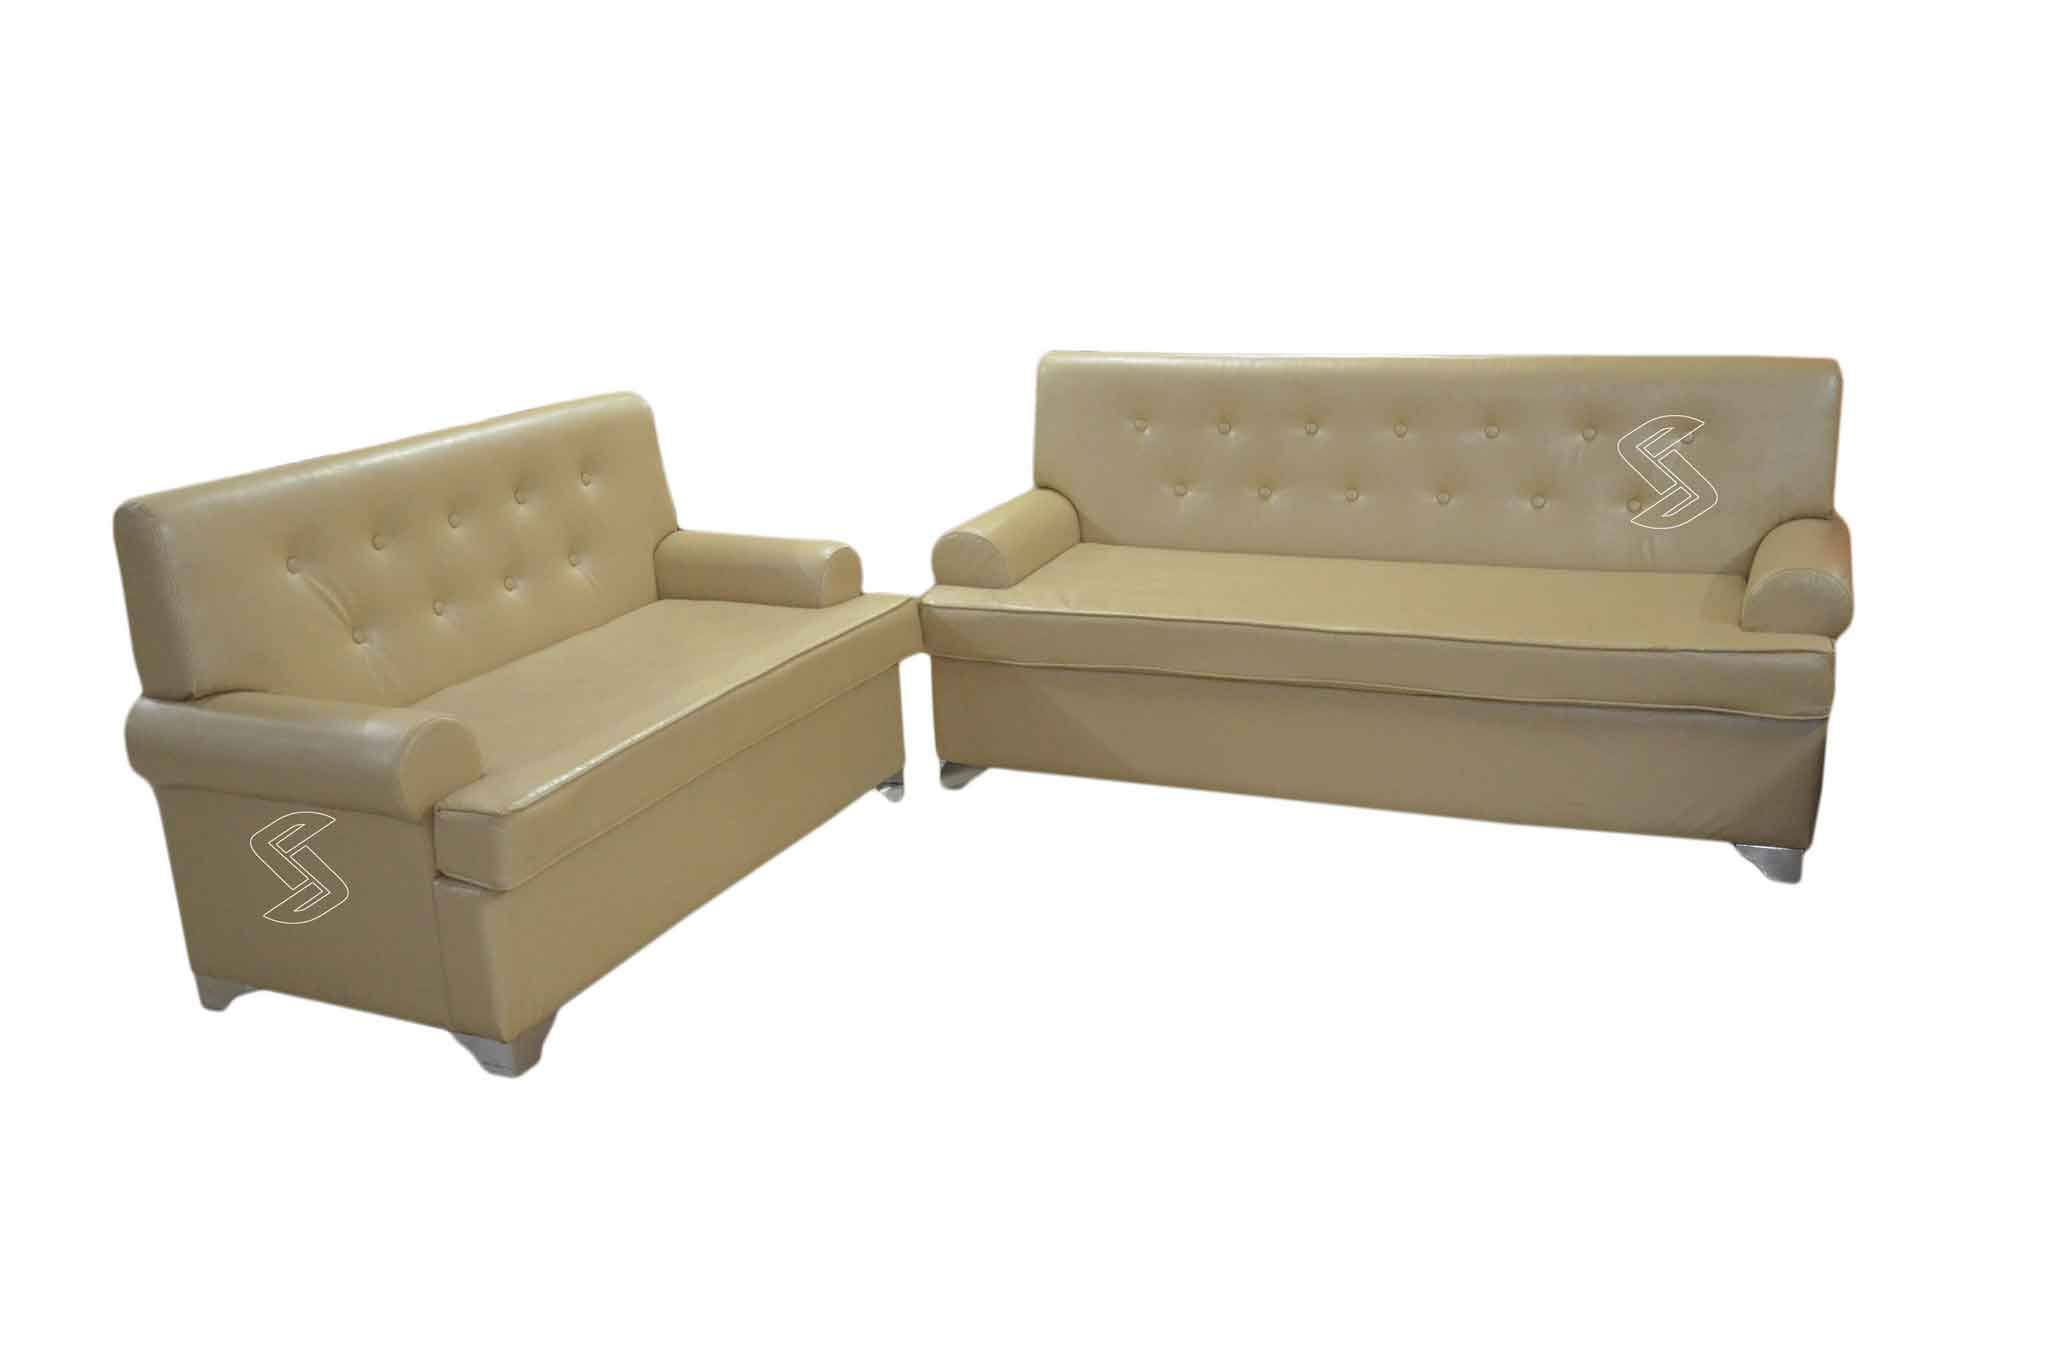 teak sofa sets hyderabad restoration hardware soho tufted leather second hand wooden set in www